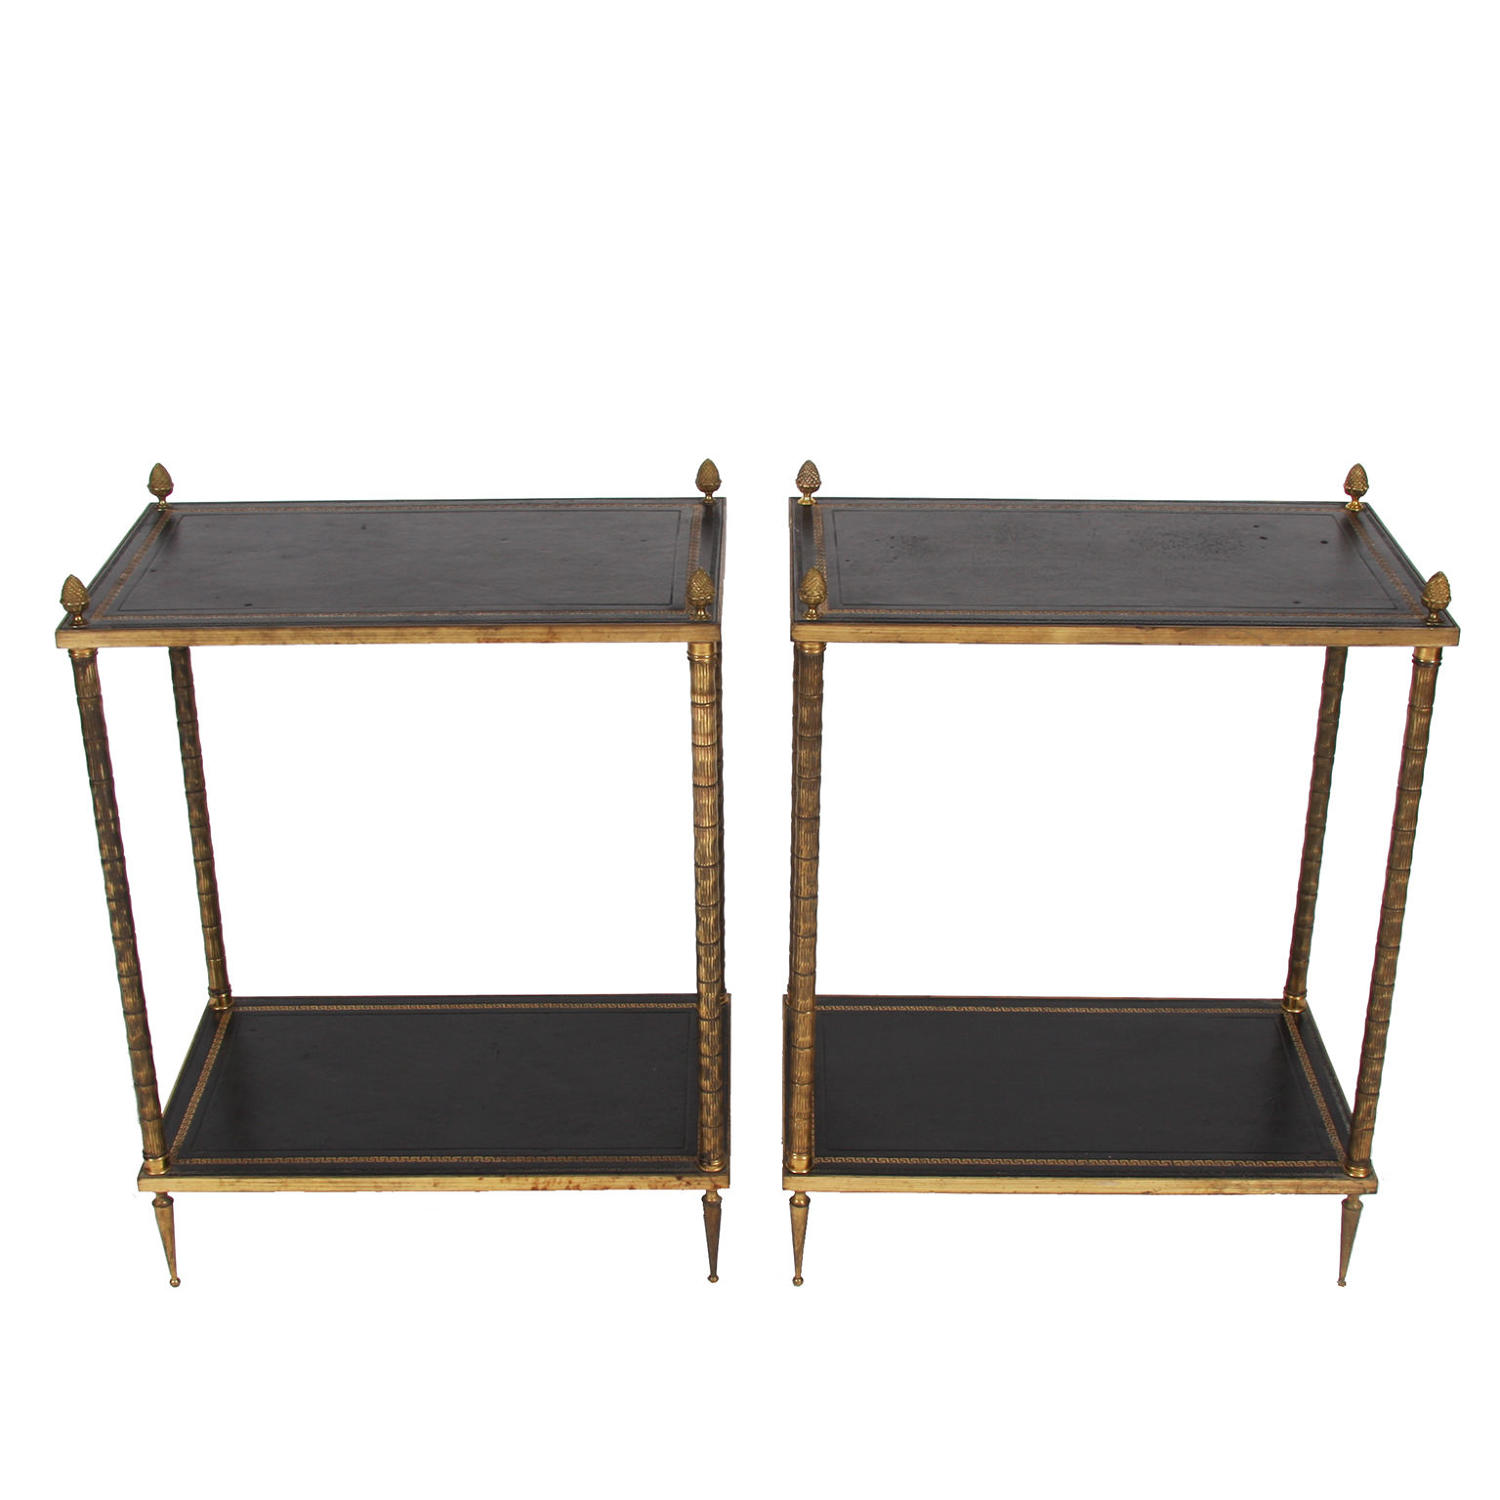 Pair of Two Tier Leather Top & Brass Side Tables